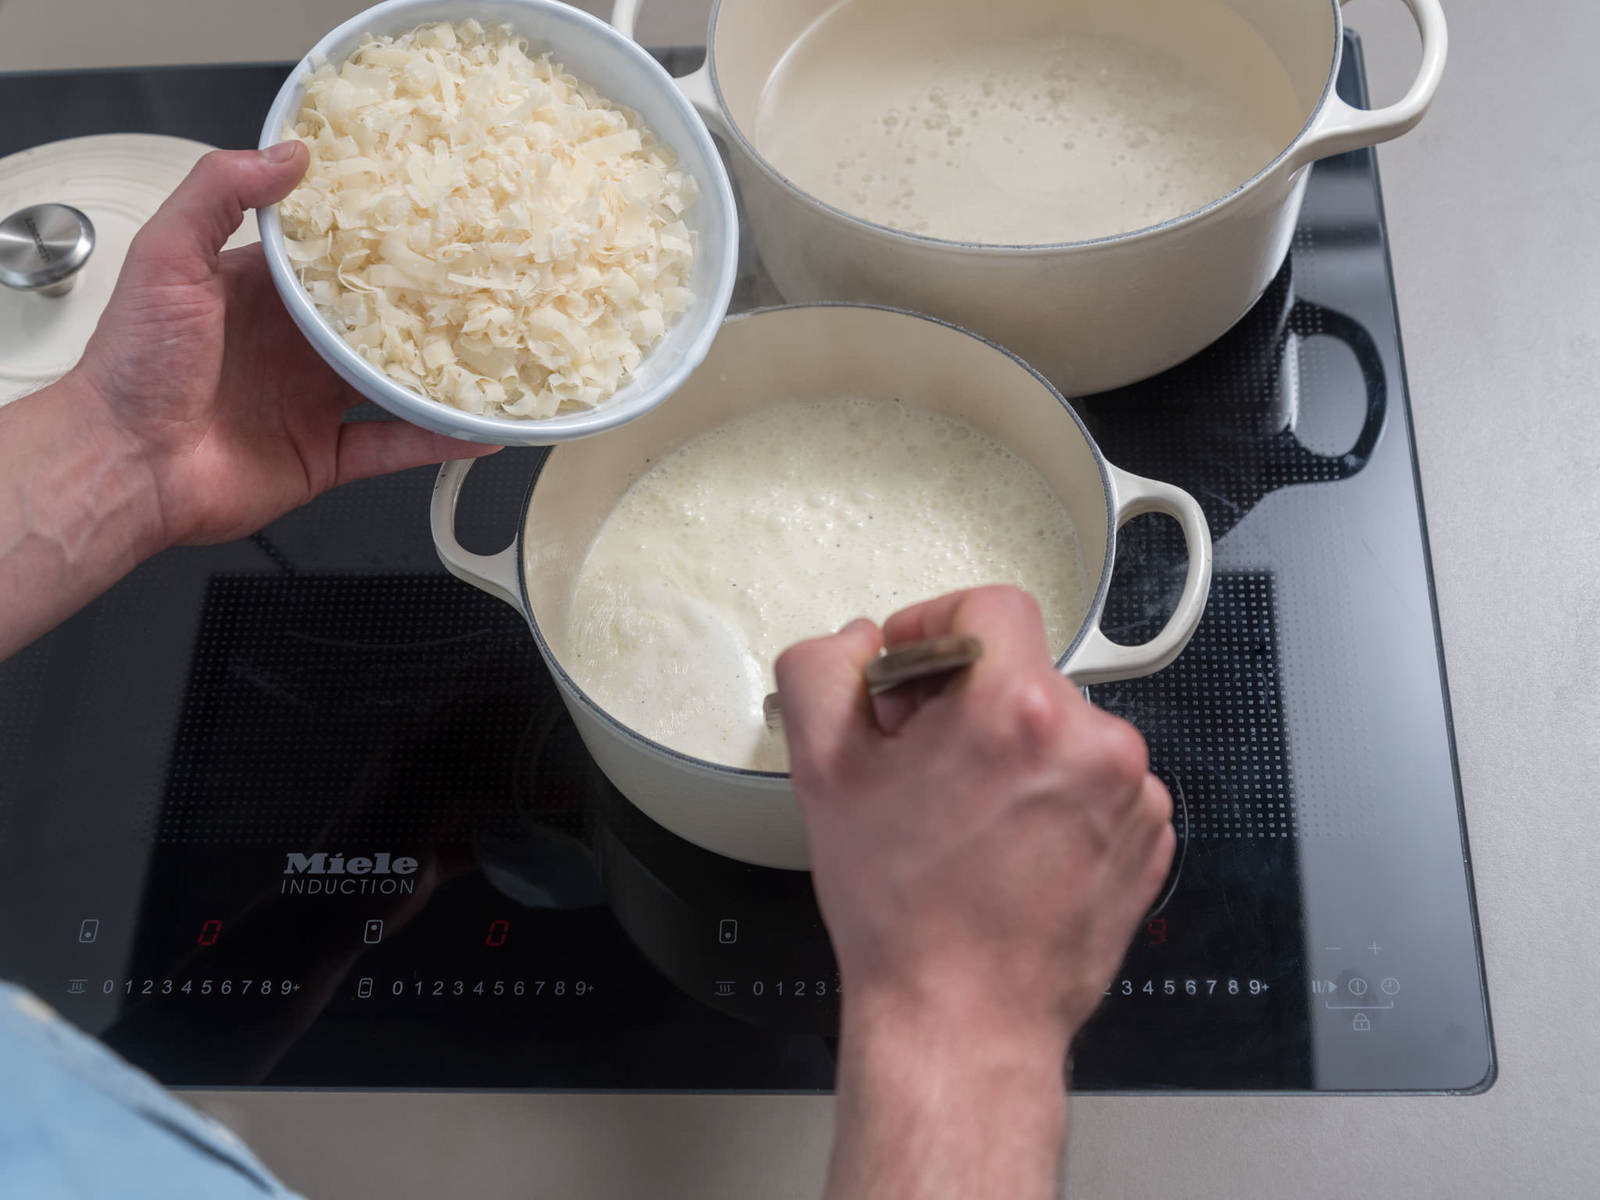 Melt some of the butter in a saucepan over medium-low heat. Add garlic and fry for approx. 1 min. Transfer cream to saucepan and season with salt and pepper. Simmer for approx. 3 min. or until slightly thickened. Stir occasionally. Add Parmesan cheese and remove saucepan from heat.